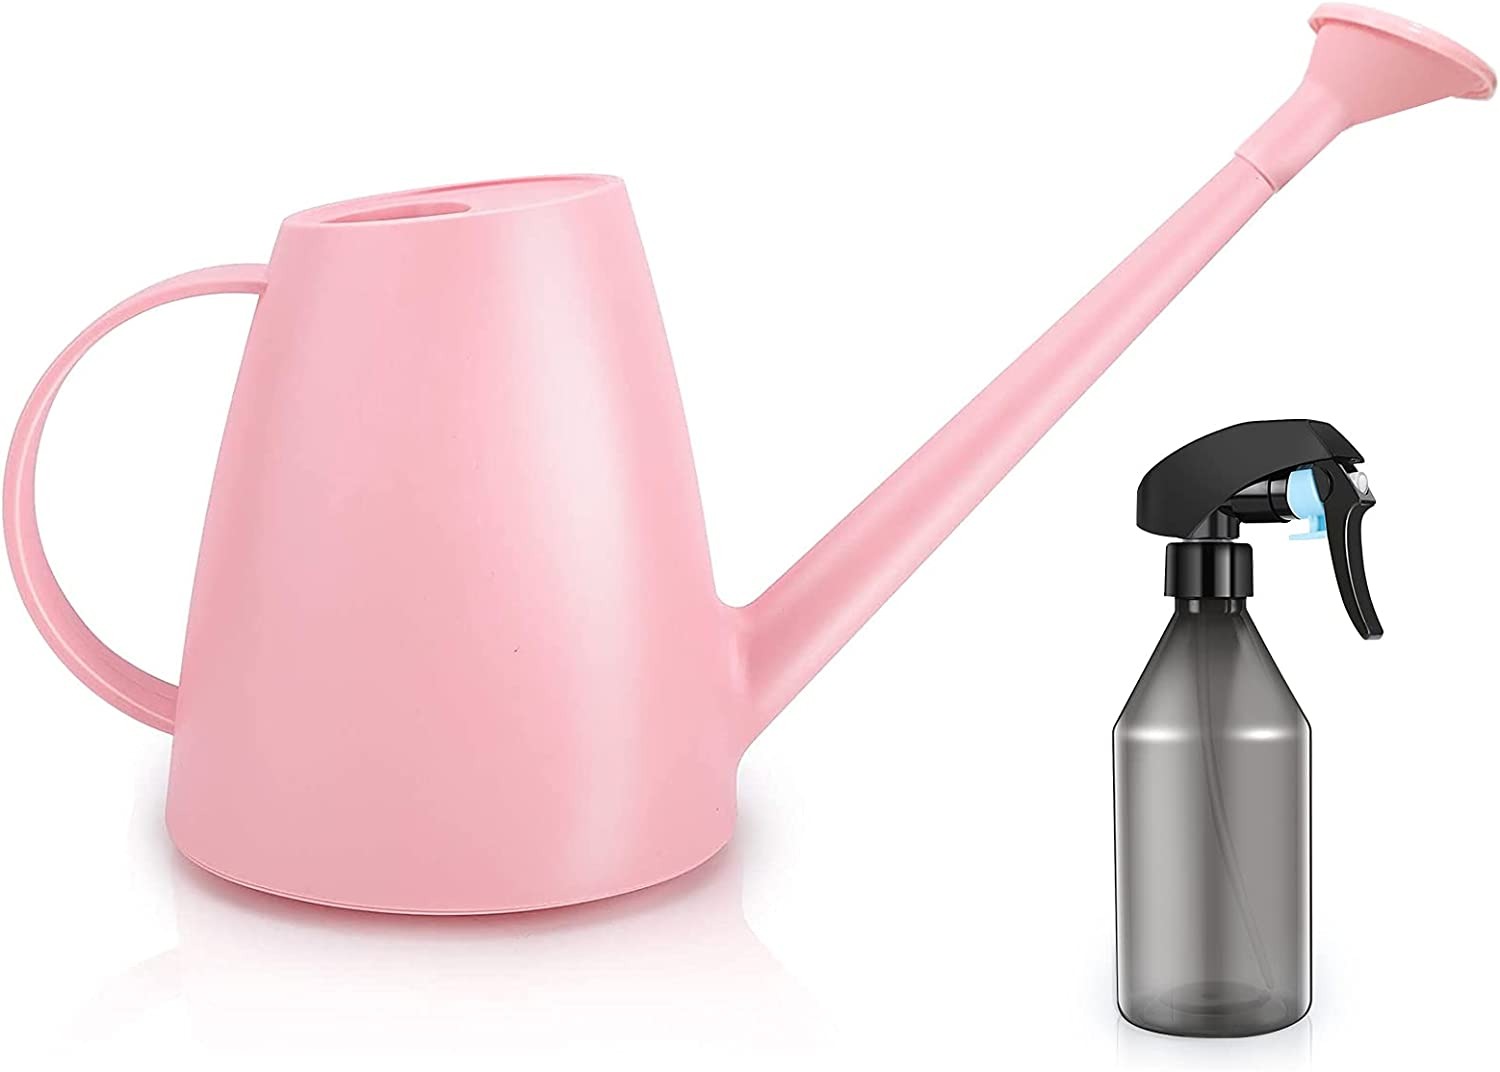 Qilebi Small Watering Can with Sprinkler Head, Indoor Watering Cans with Spray Bottle for Houseplant Garden Flower, Water Can for Outdoor Plants Bonsai Plant Waterer, 0.5 Gallon 60OZ